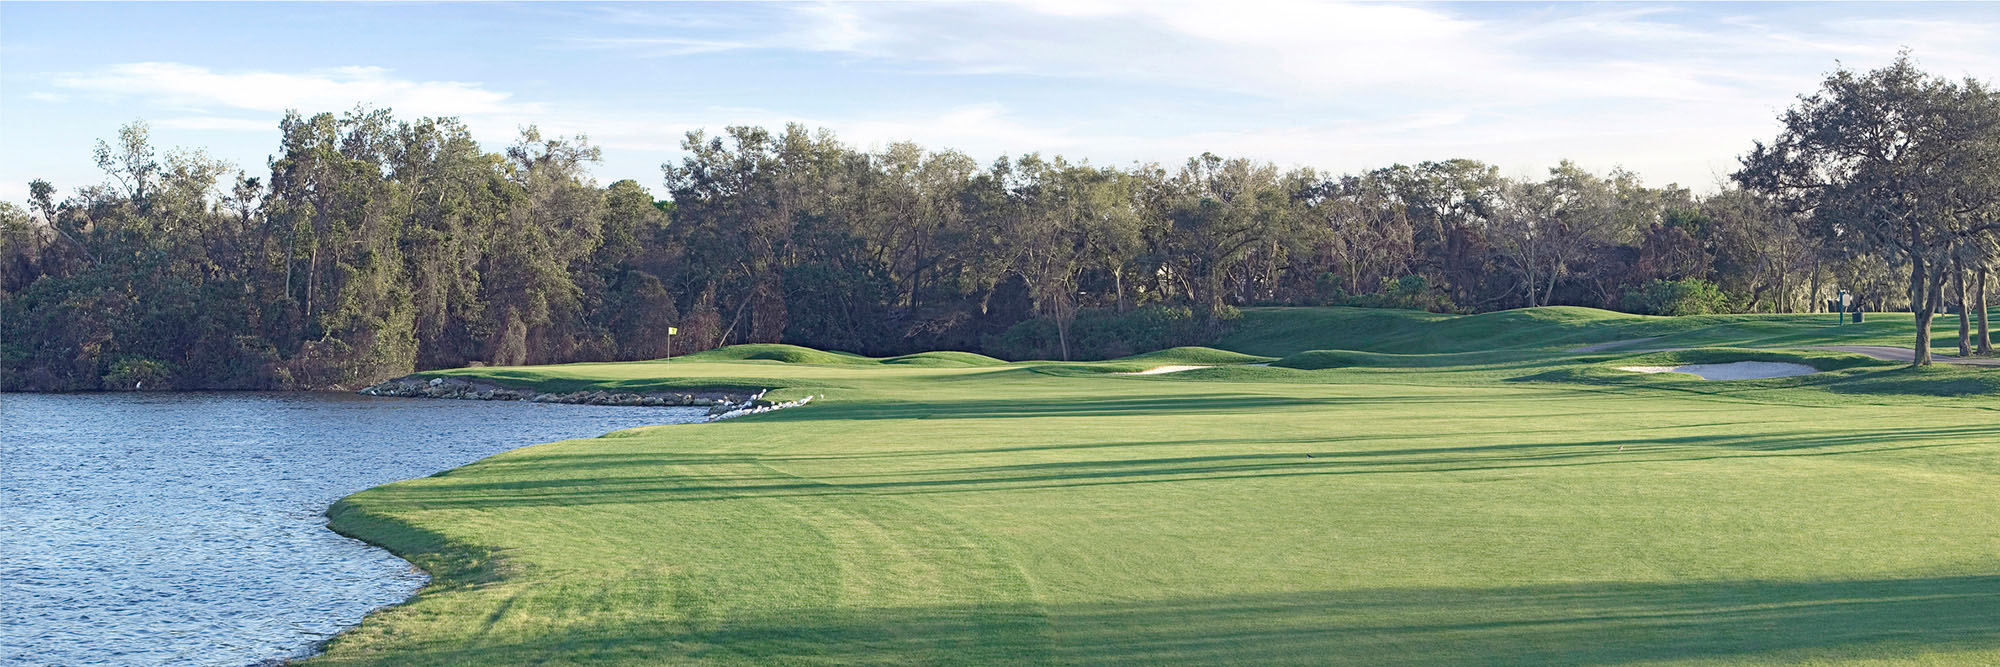 Golf Course Image - Bay Hill No. 6